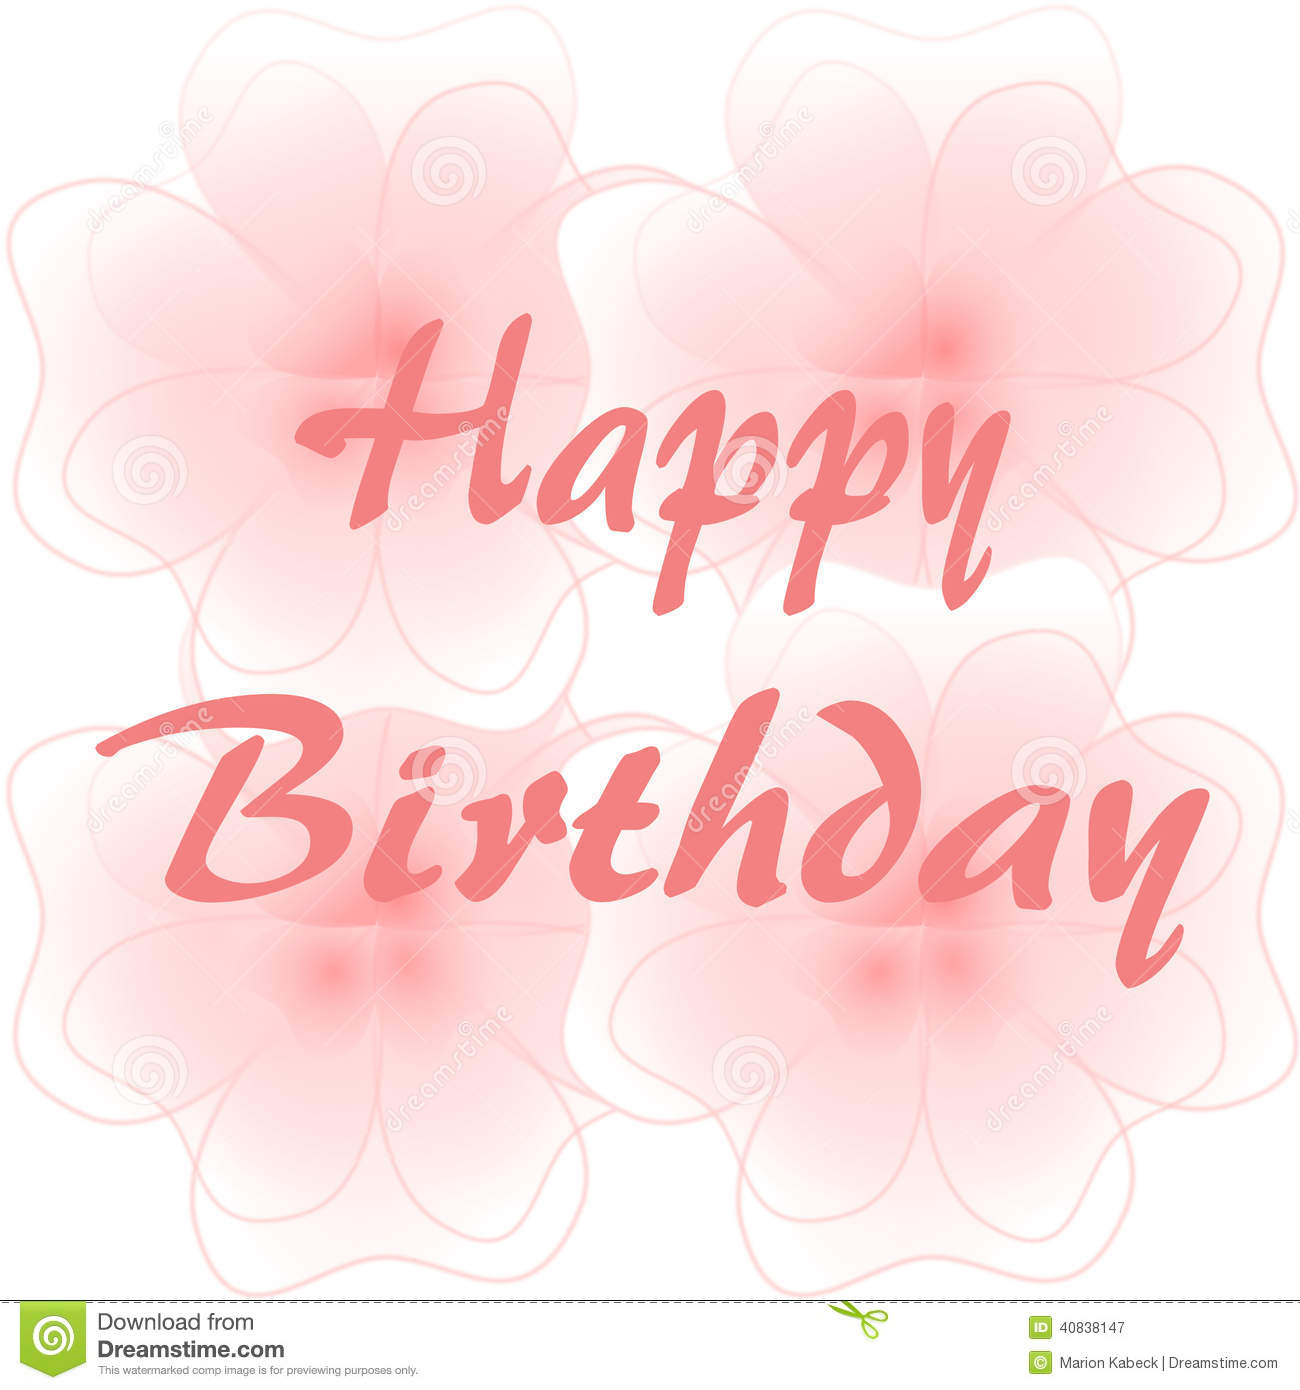 Happy birthday on large pink flowers stock illustration happy birthday on large pink flowers izmirmasajfo Images